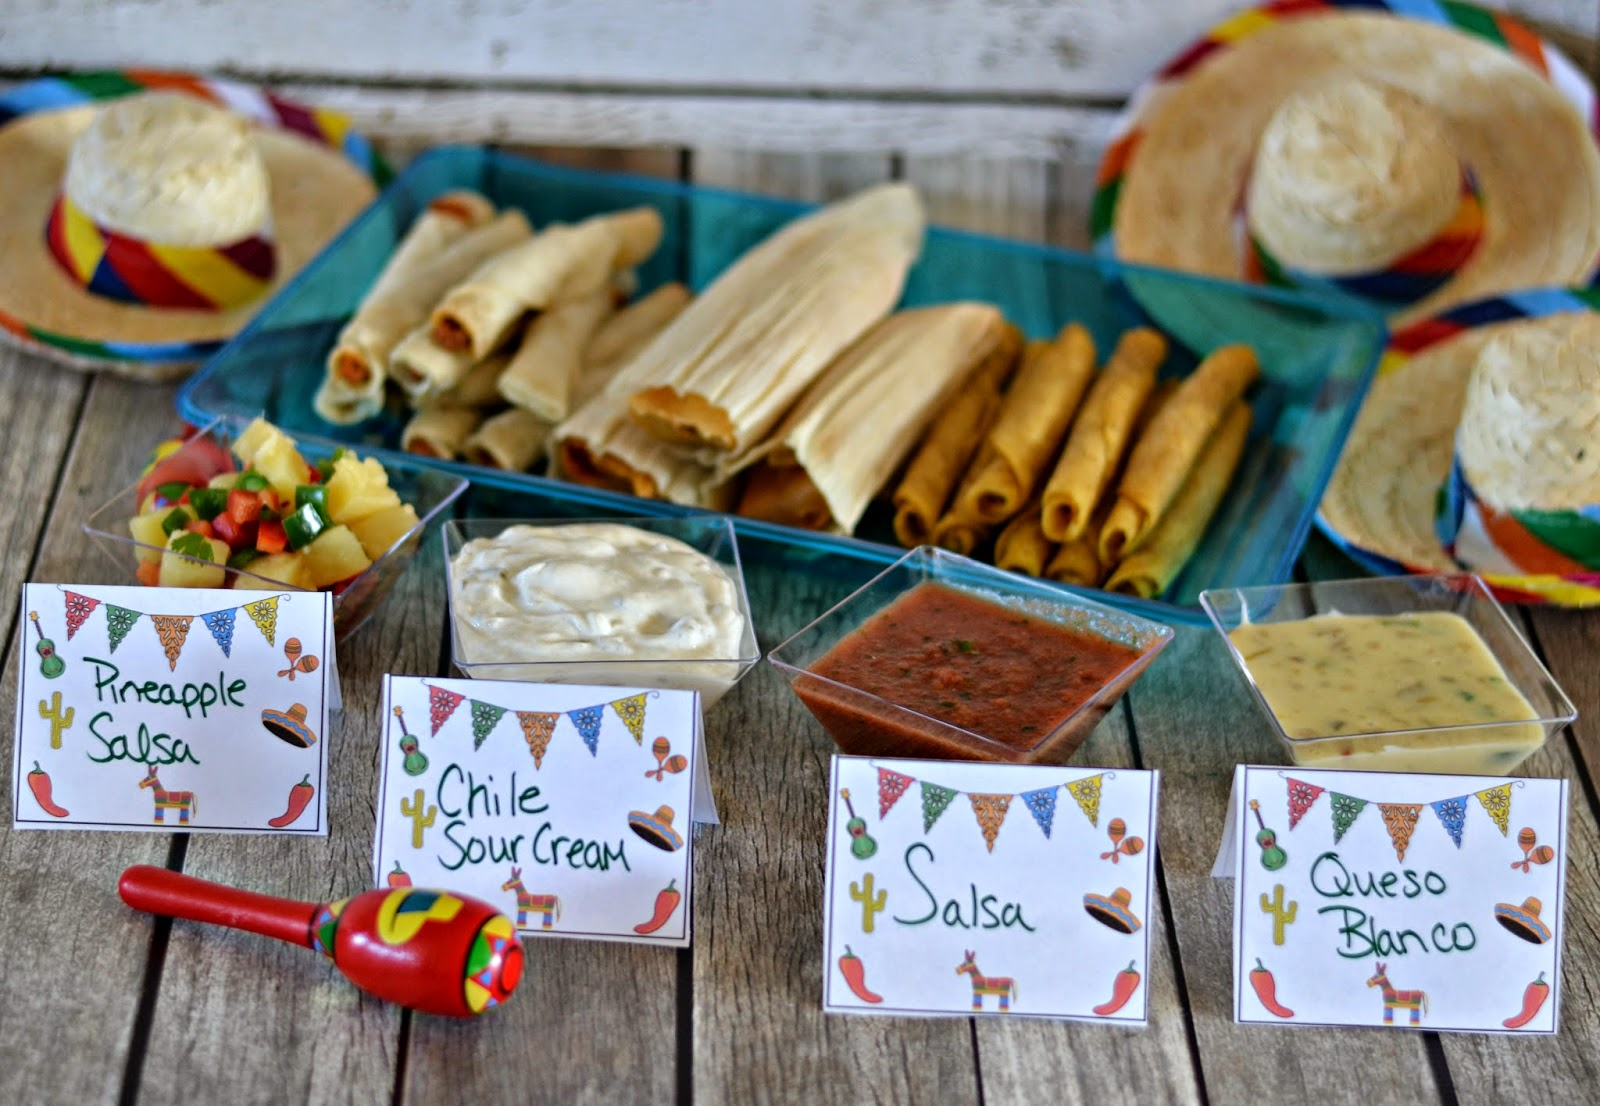 taco bar, Taquitos, Tamale, salsa recipe, queso blanco recipe, fun Mexican Fiesta bar